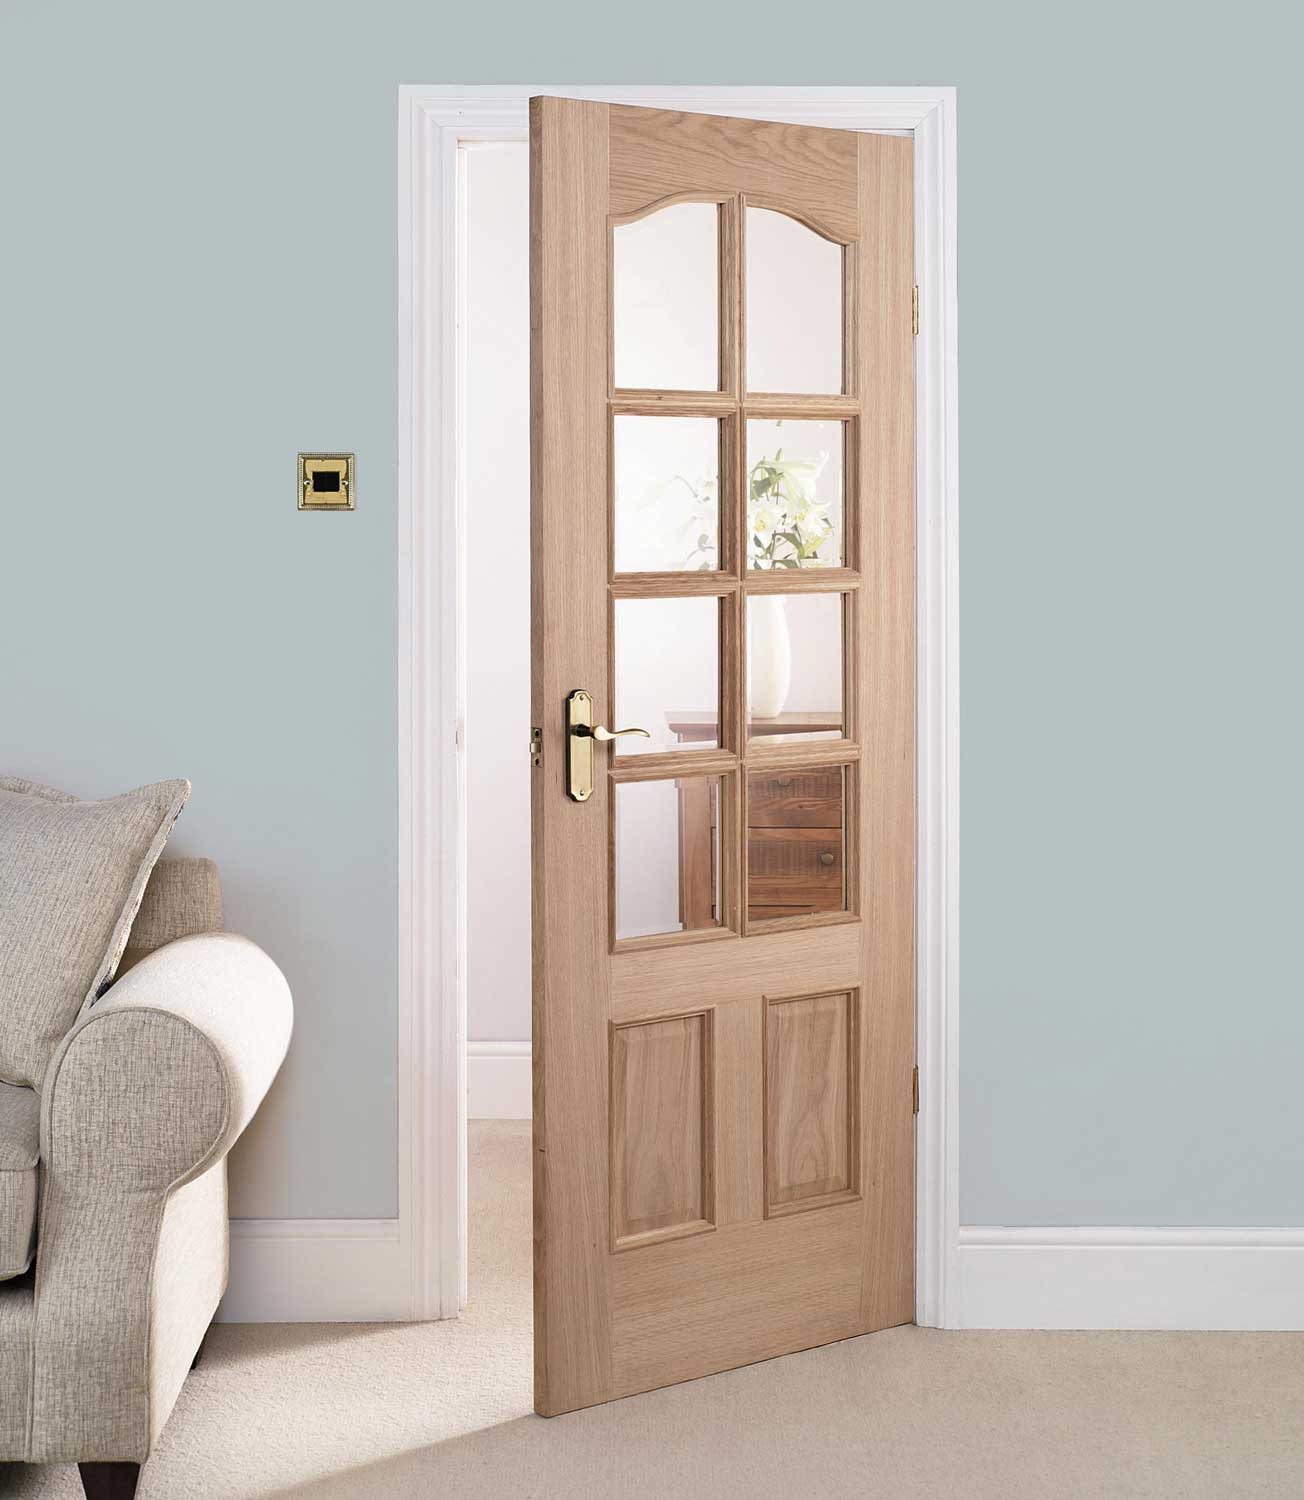 30 x 80 interior door with glass are chosen often for living rooms in modern style